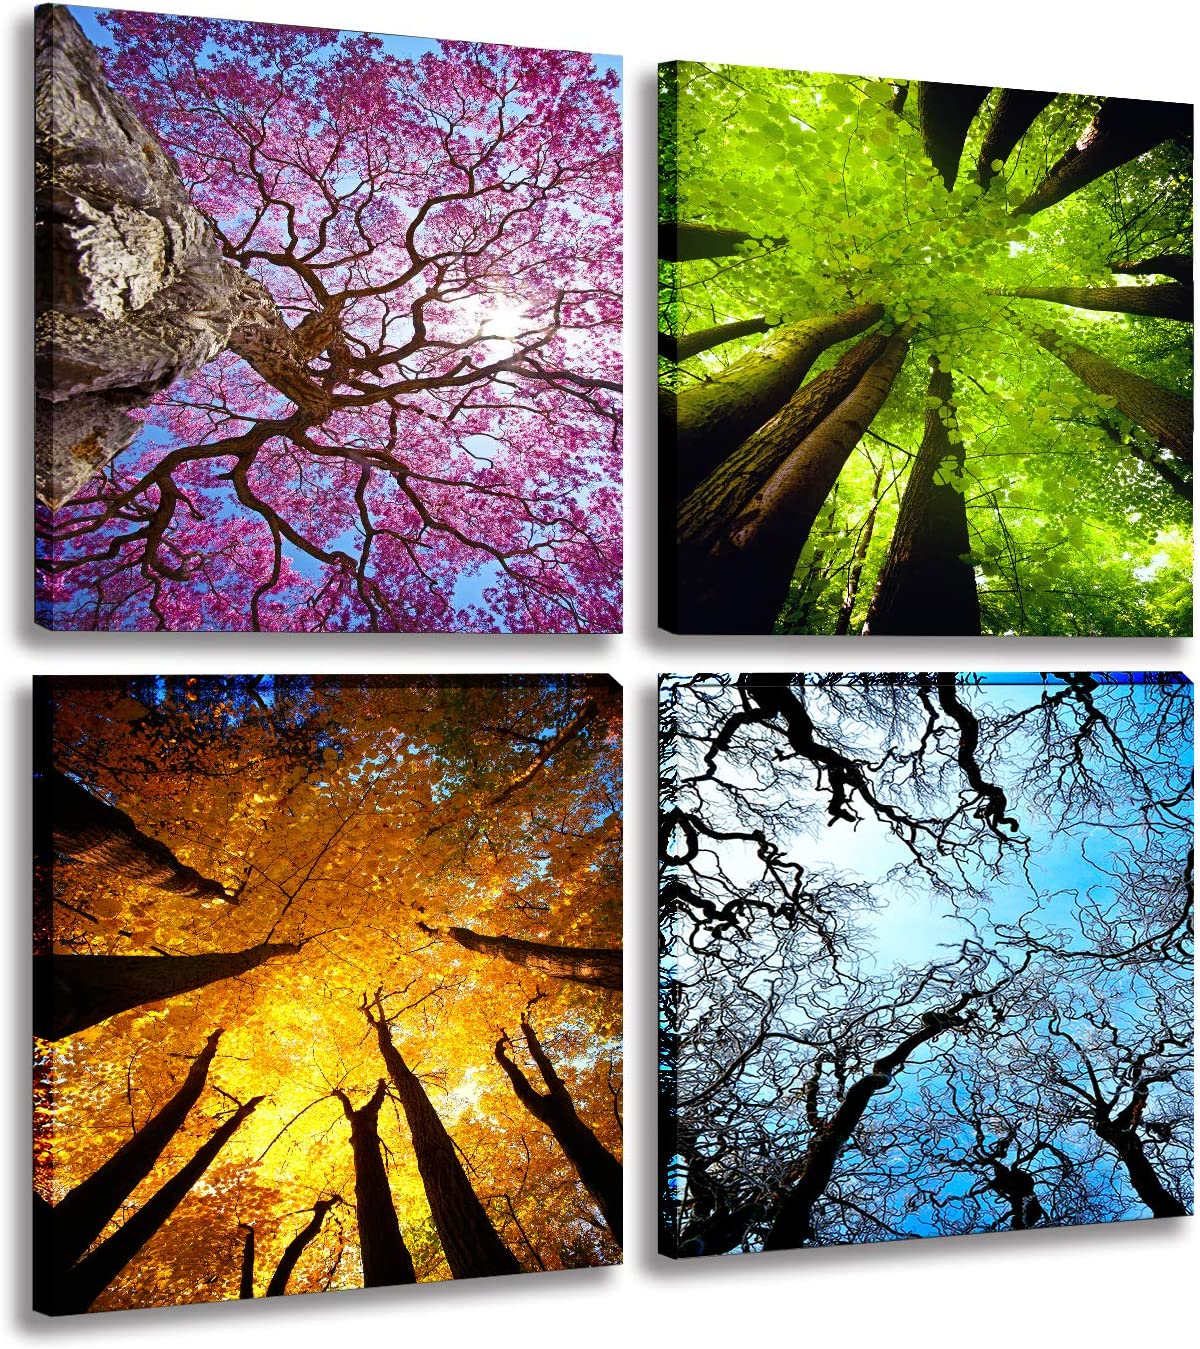 4 Panels Canvas Wall Art Spring Summer Autumn Winter Four Seasons Landscape Color Tree Painting Picture Prints Modern Giclee Artwork Stretched And Framed For Homel Decoration 30x30cmx4pcs Amazon Ca Home Kitchen